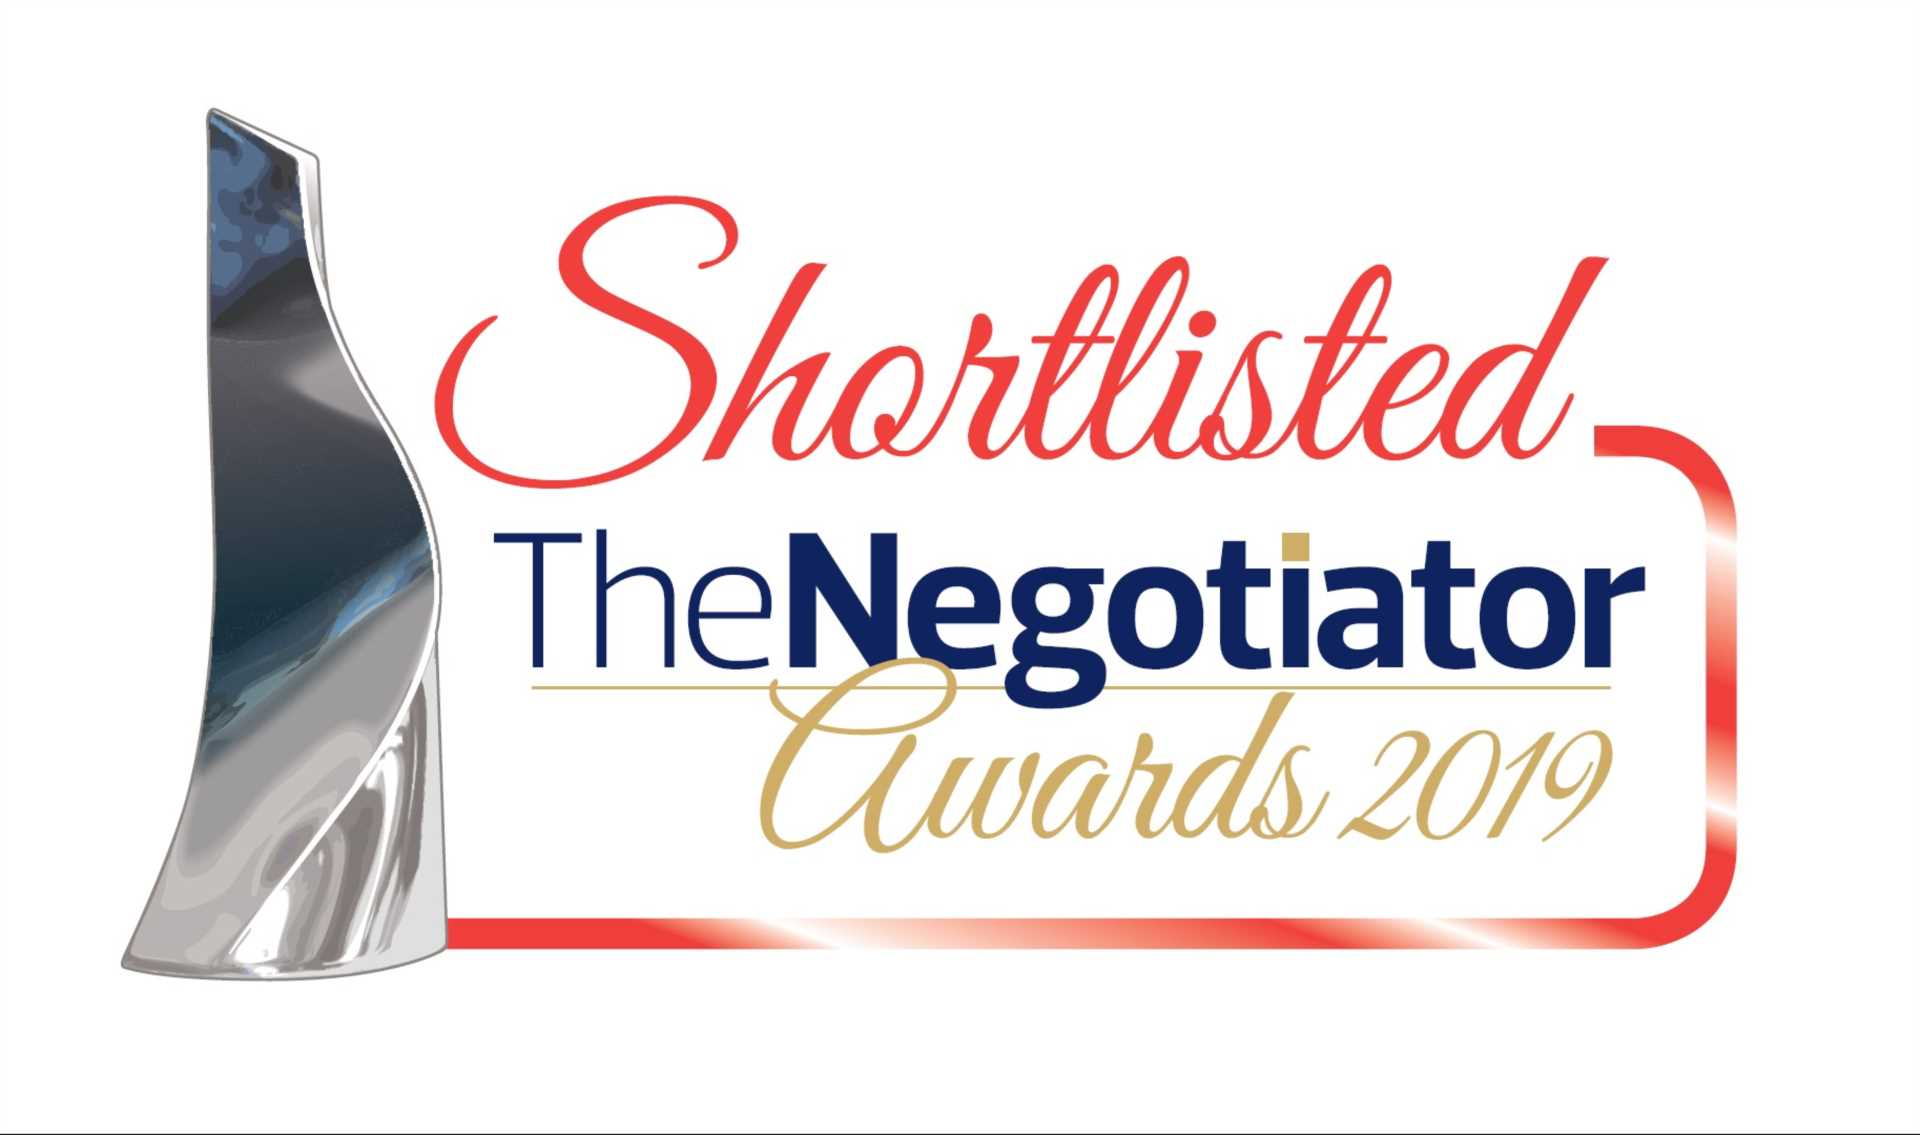 We have been shortlisted for the Negotiator Awards 2019